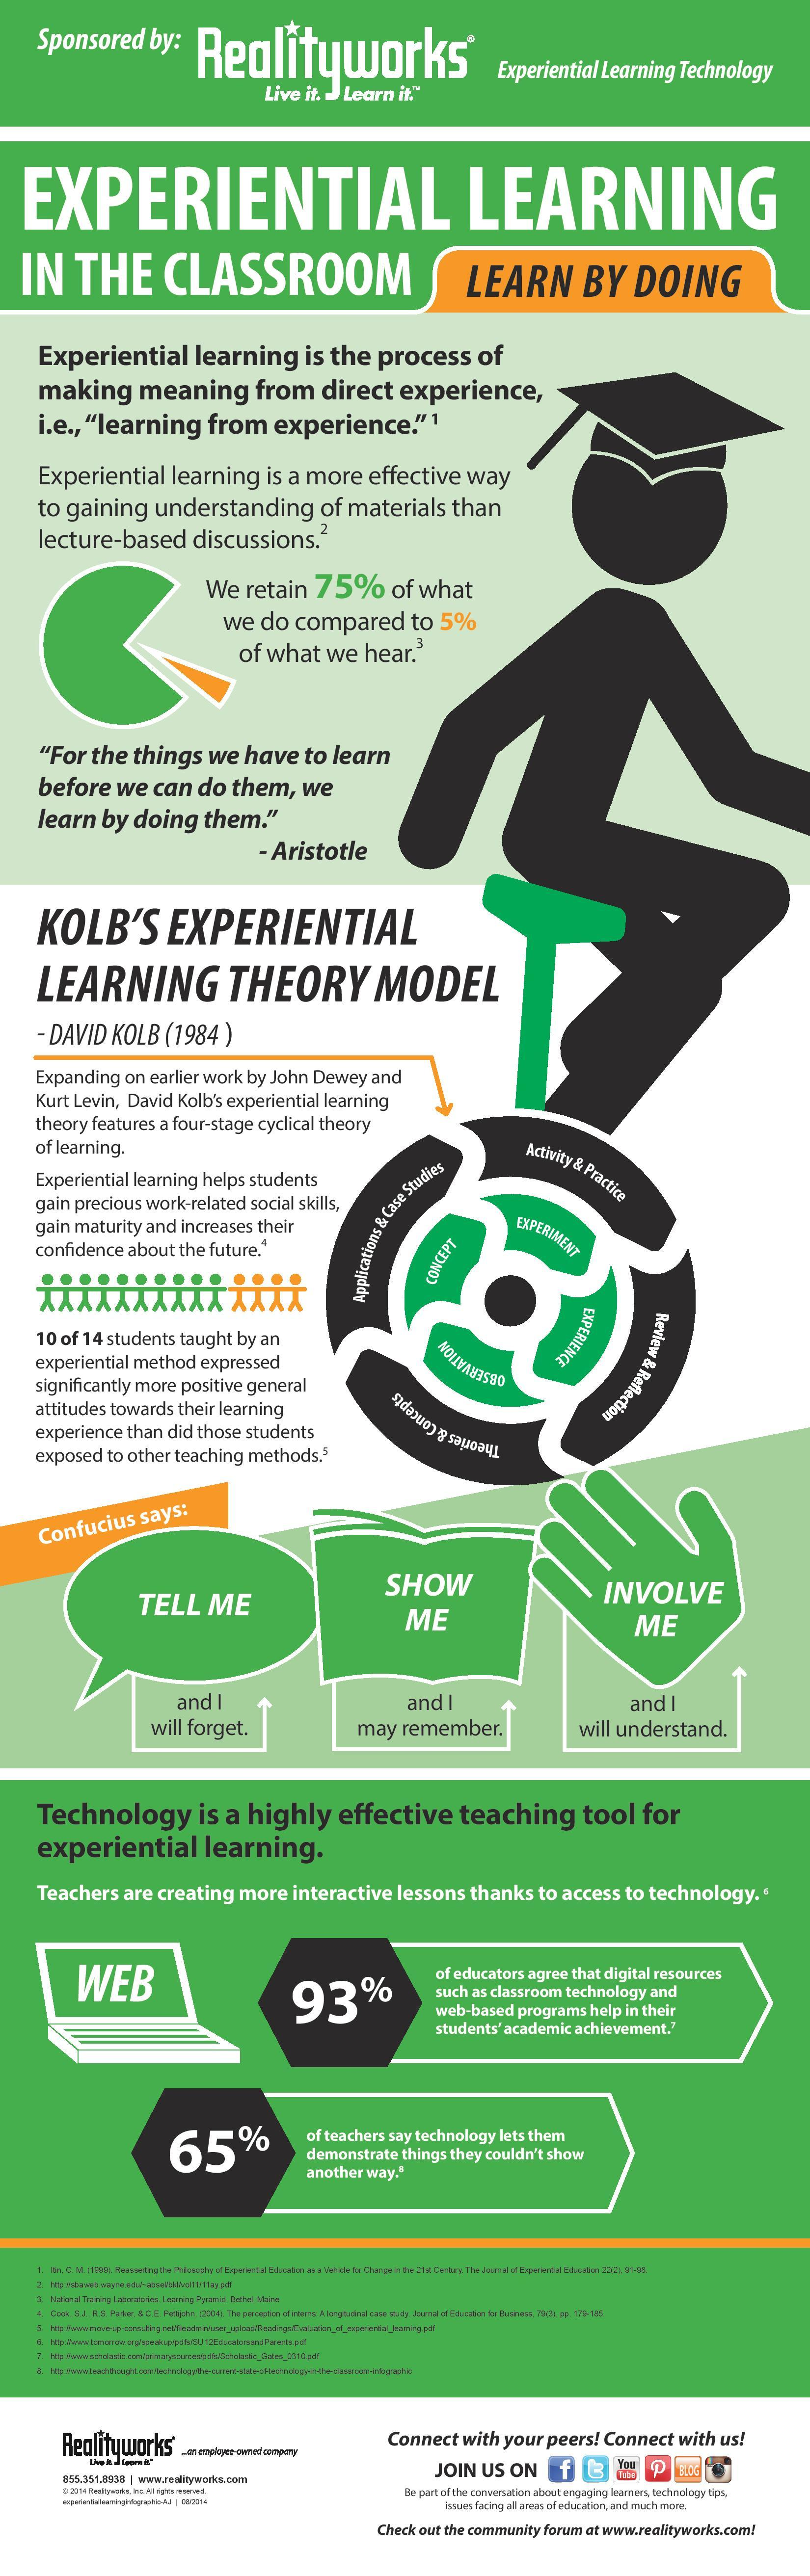 Experiential Learning in The Classroom Infographic